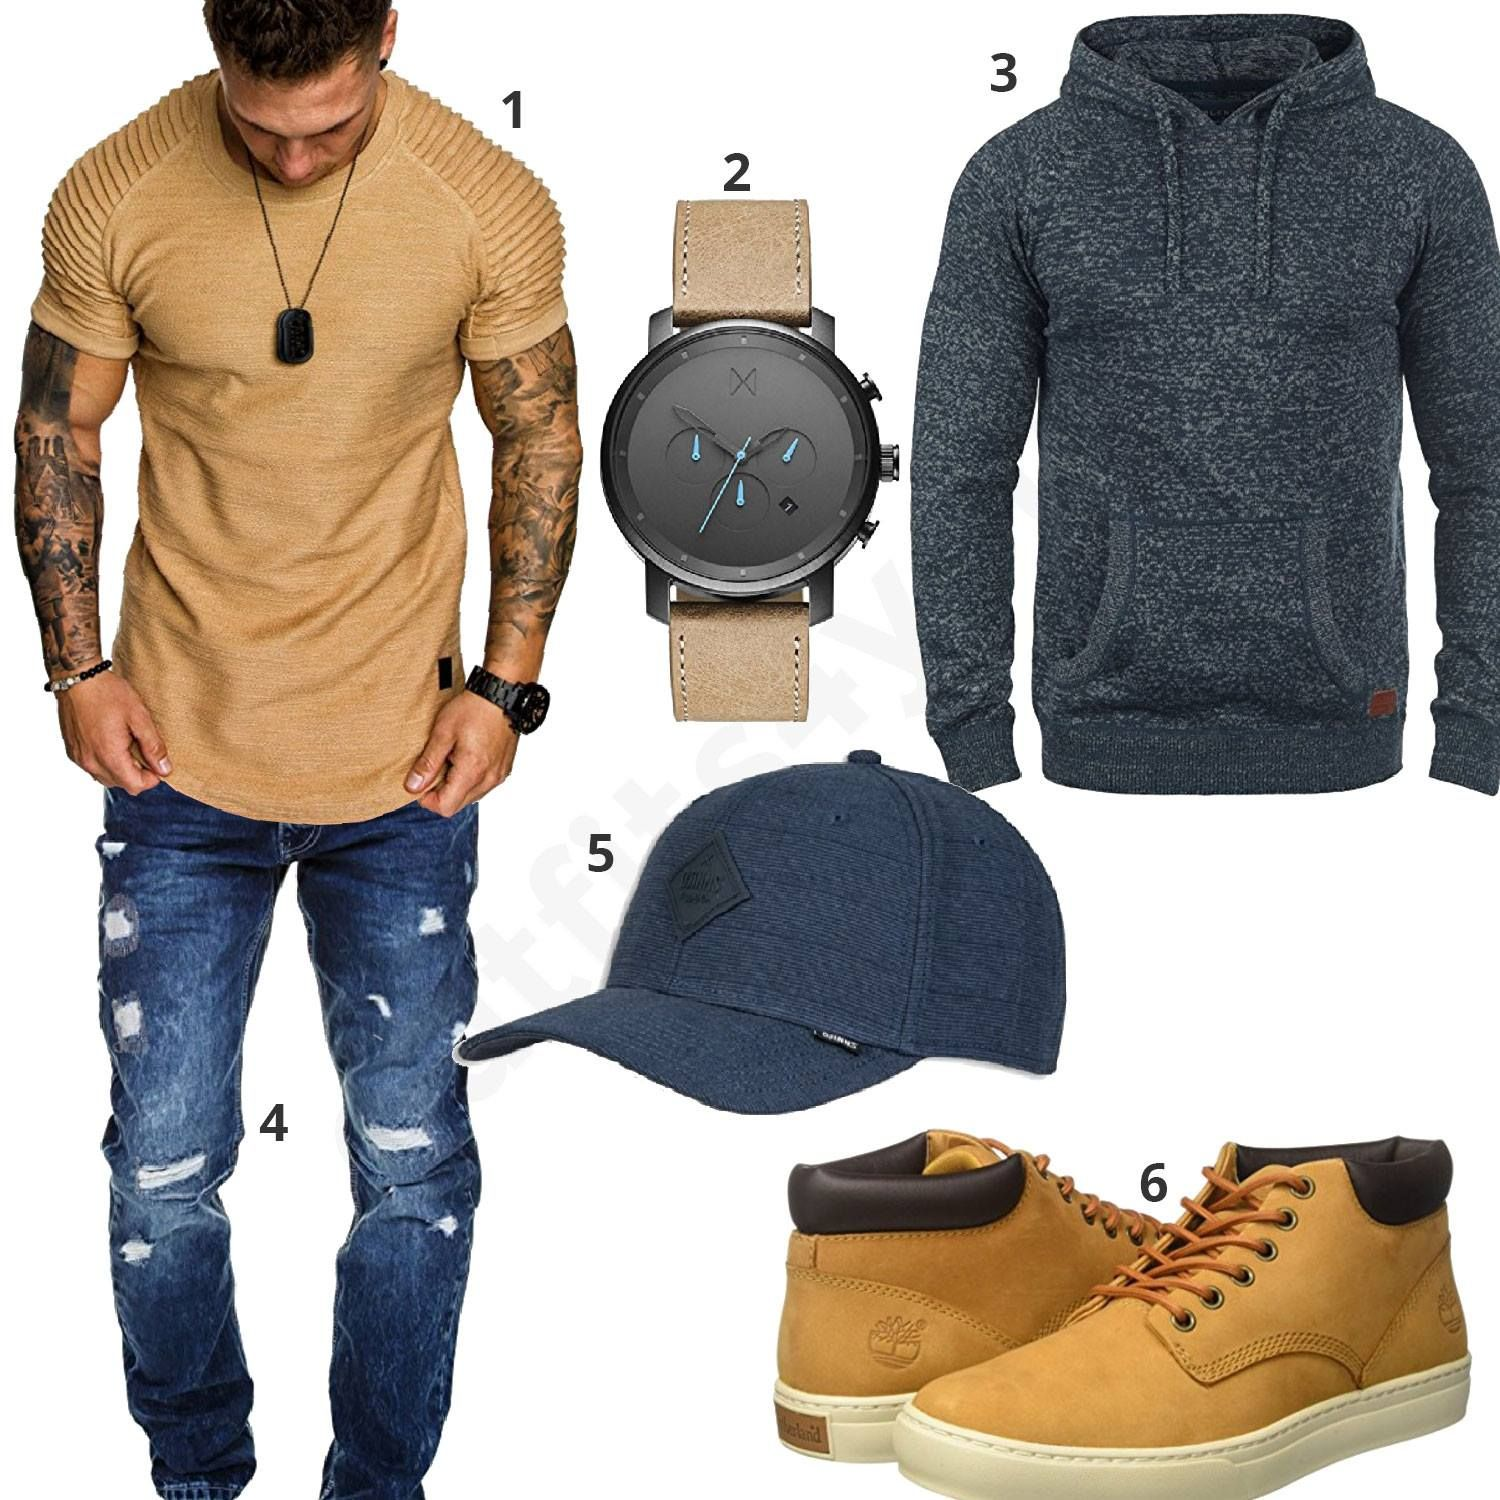 herbst outfit f r herren in beige gold und blau m0607 amacisons mvmt djinns timberland. Black Bedroom Furniture Sets. Home Design Ideas